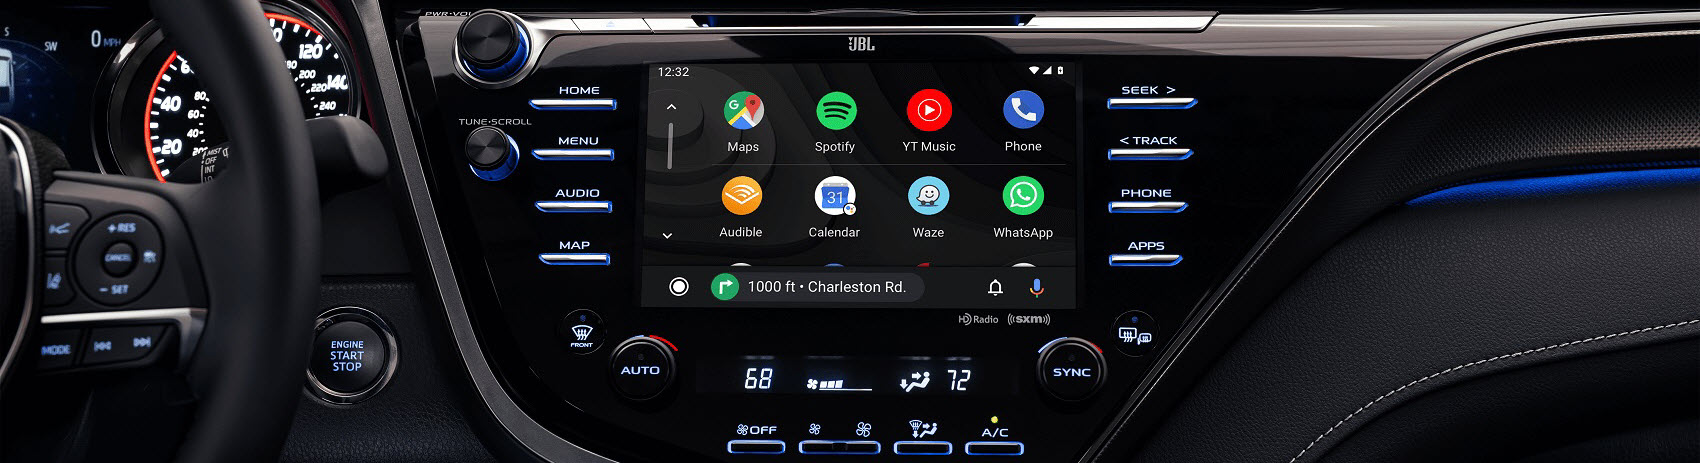 2021 Toyota Camry Interior with Android Auto™ compatibility